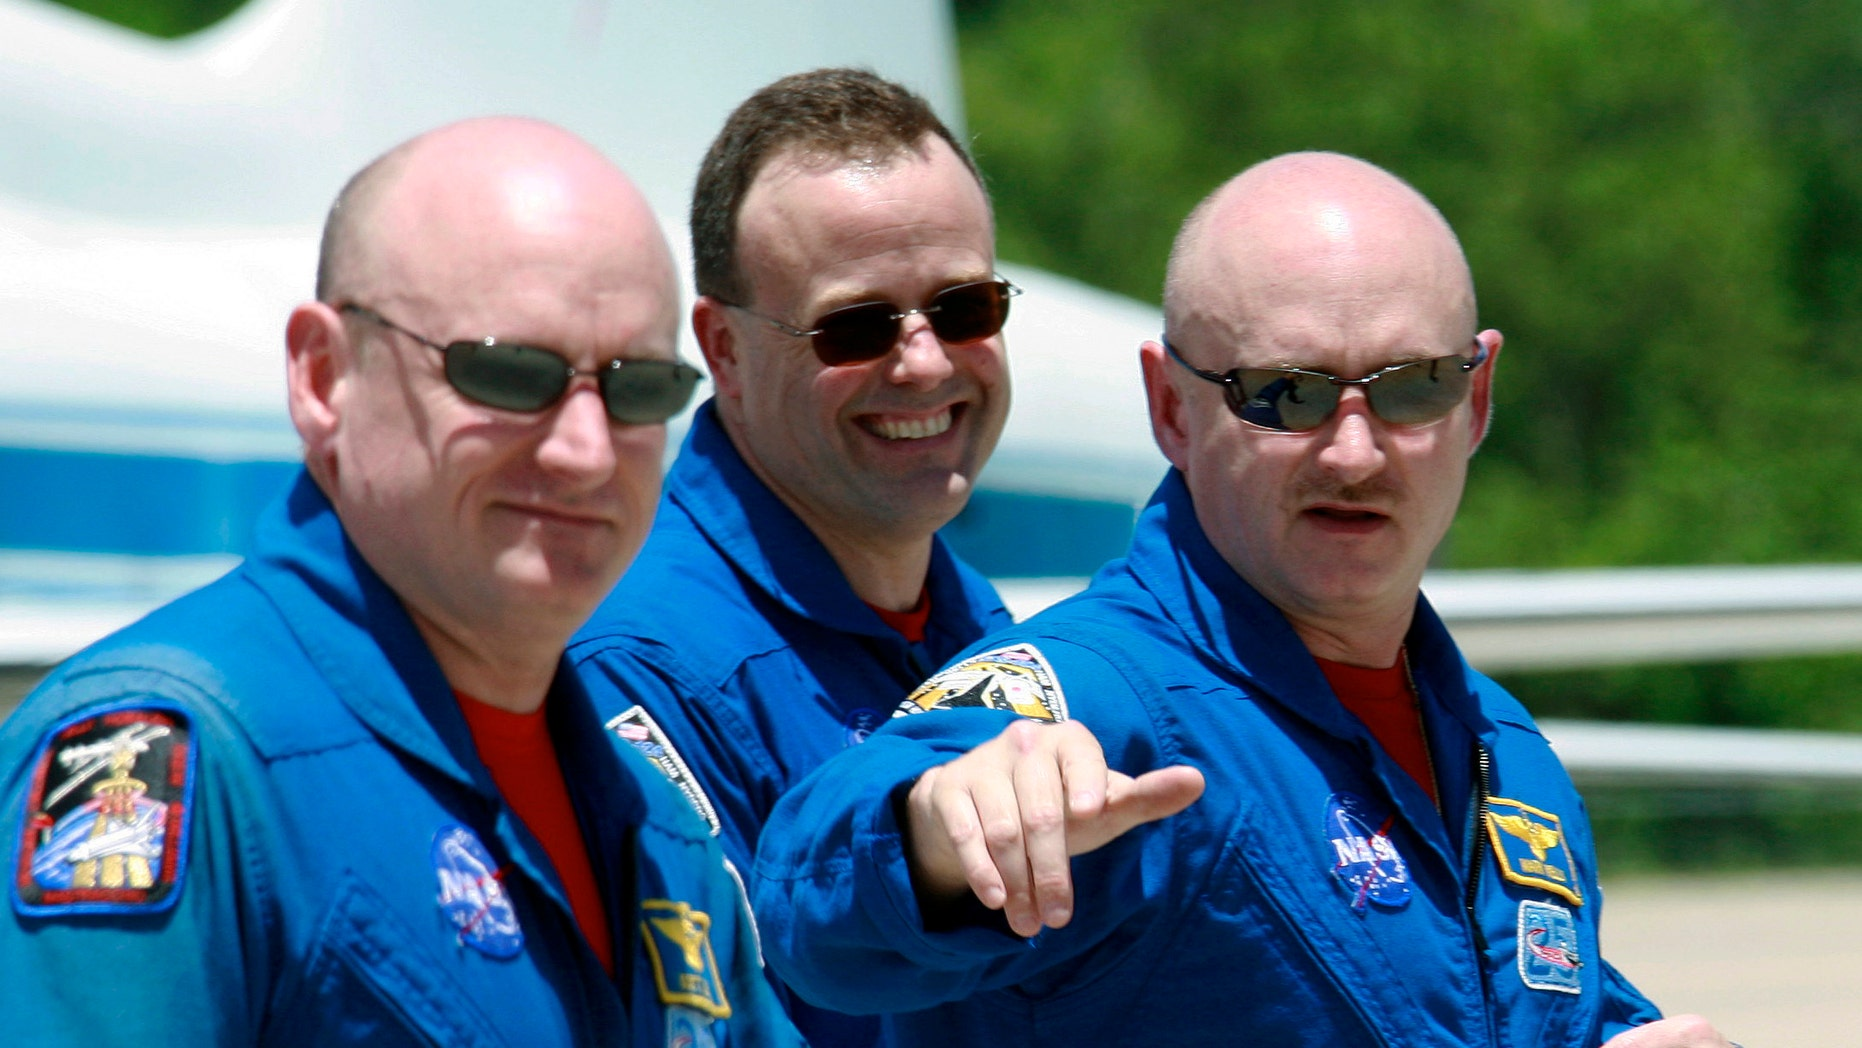 May 28, 2008: Space shuttle Discovery commander Mark Kelly, right, gestures as he walks with his twin brother, astronaut Scott Kelly, left, and mission specialist Ron Garan, after arrival at Kennedy Space Center in Cape Canaveral, Fla.